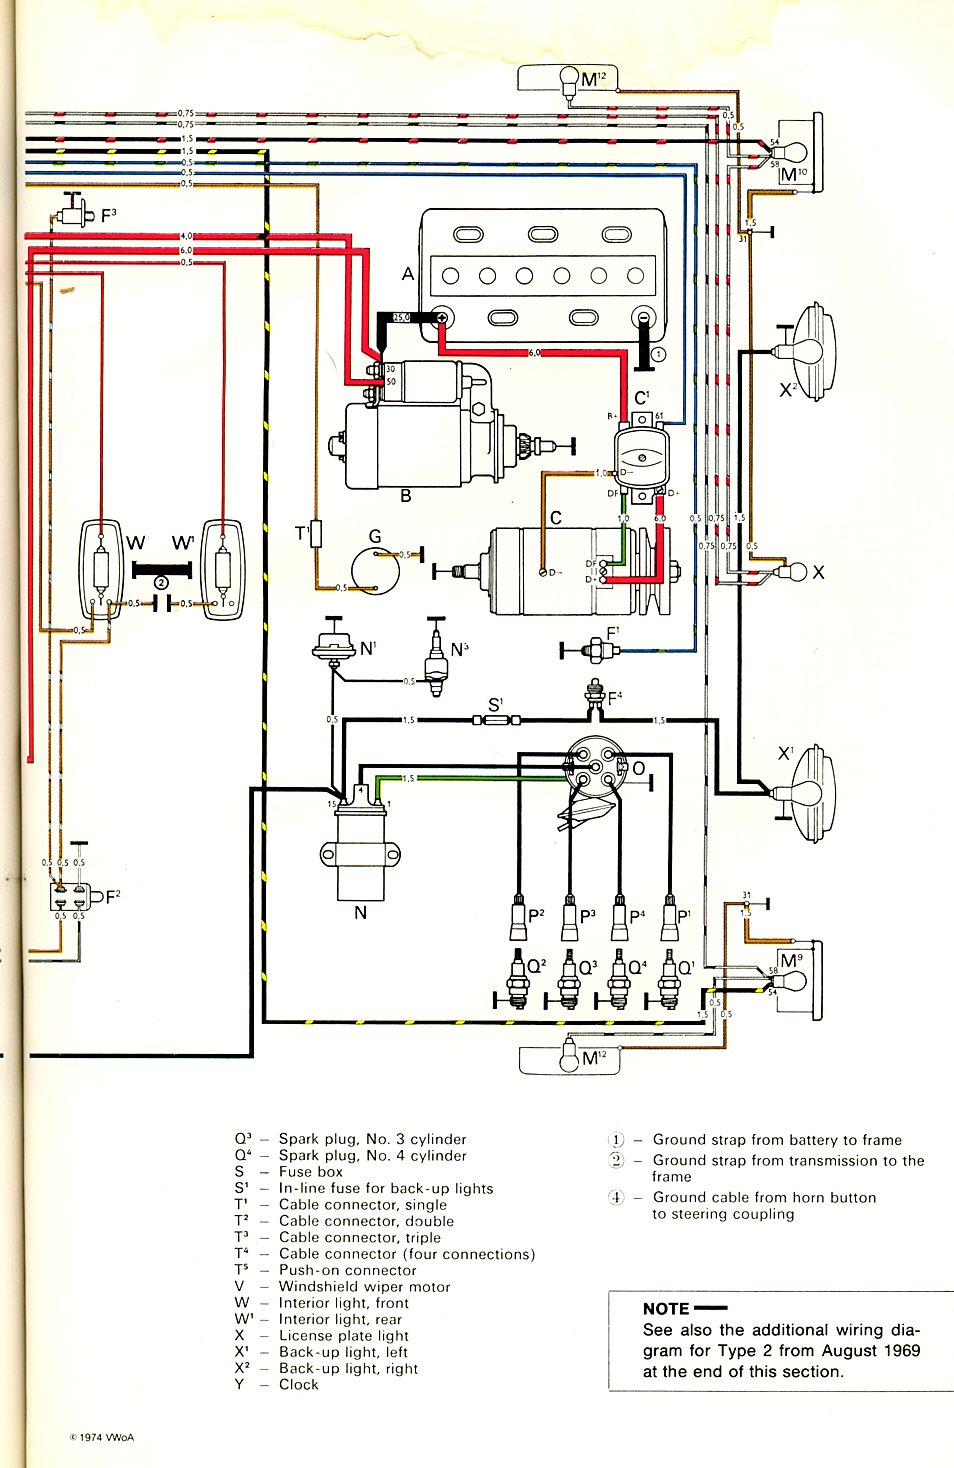 Through A Horn Relay Wiring Content Resource Of Gm Diagram Thesamba Com Type 2 Diagrams